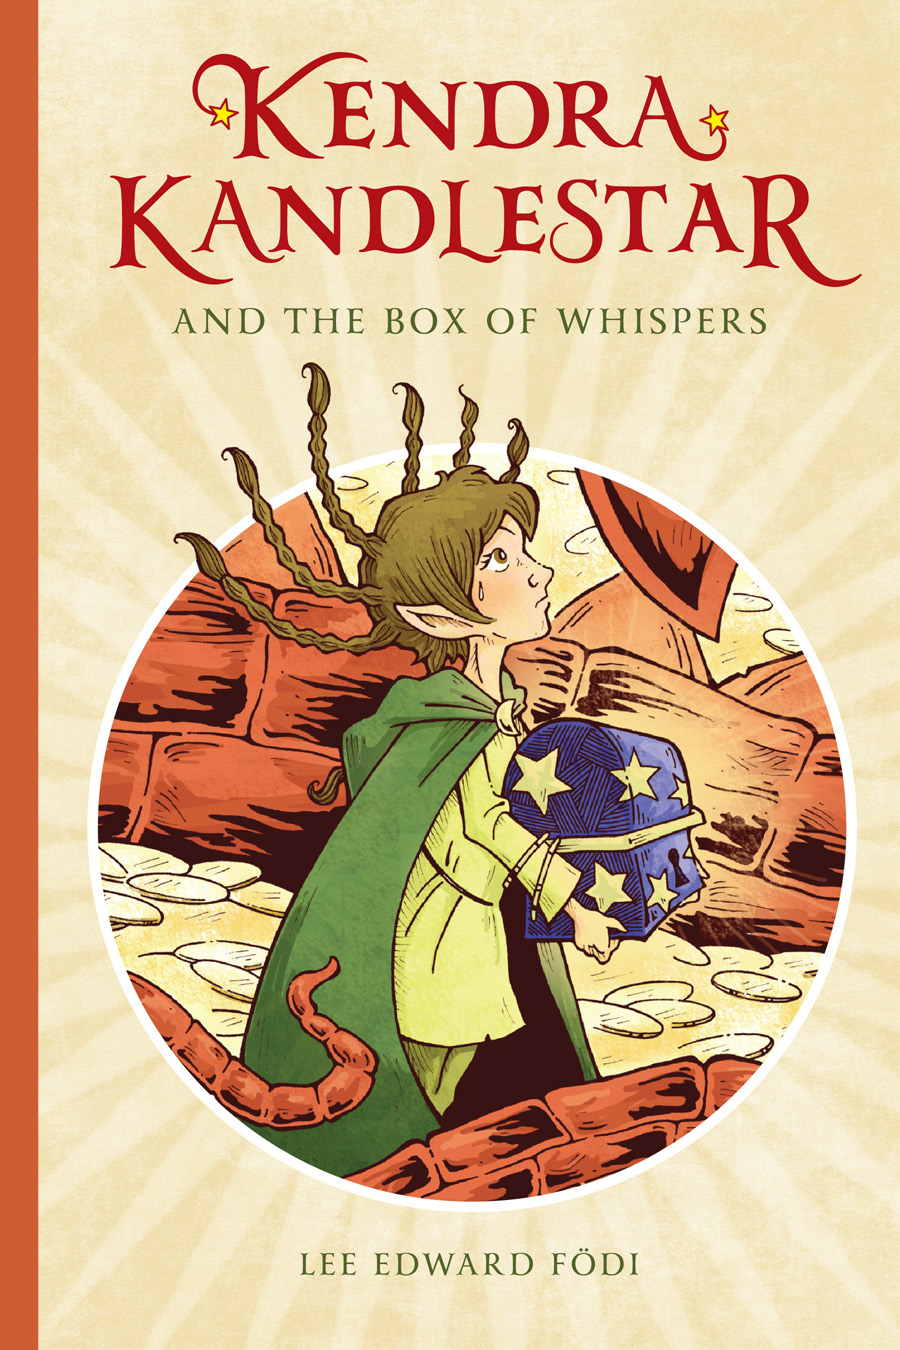 Kendra Kandlestar and the Box of Whispers.